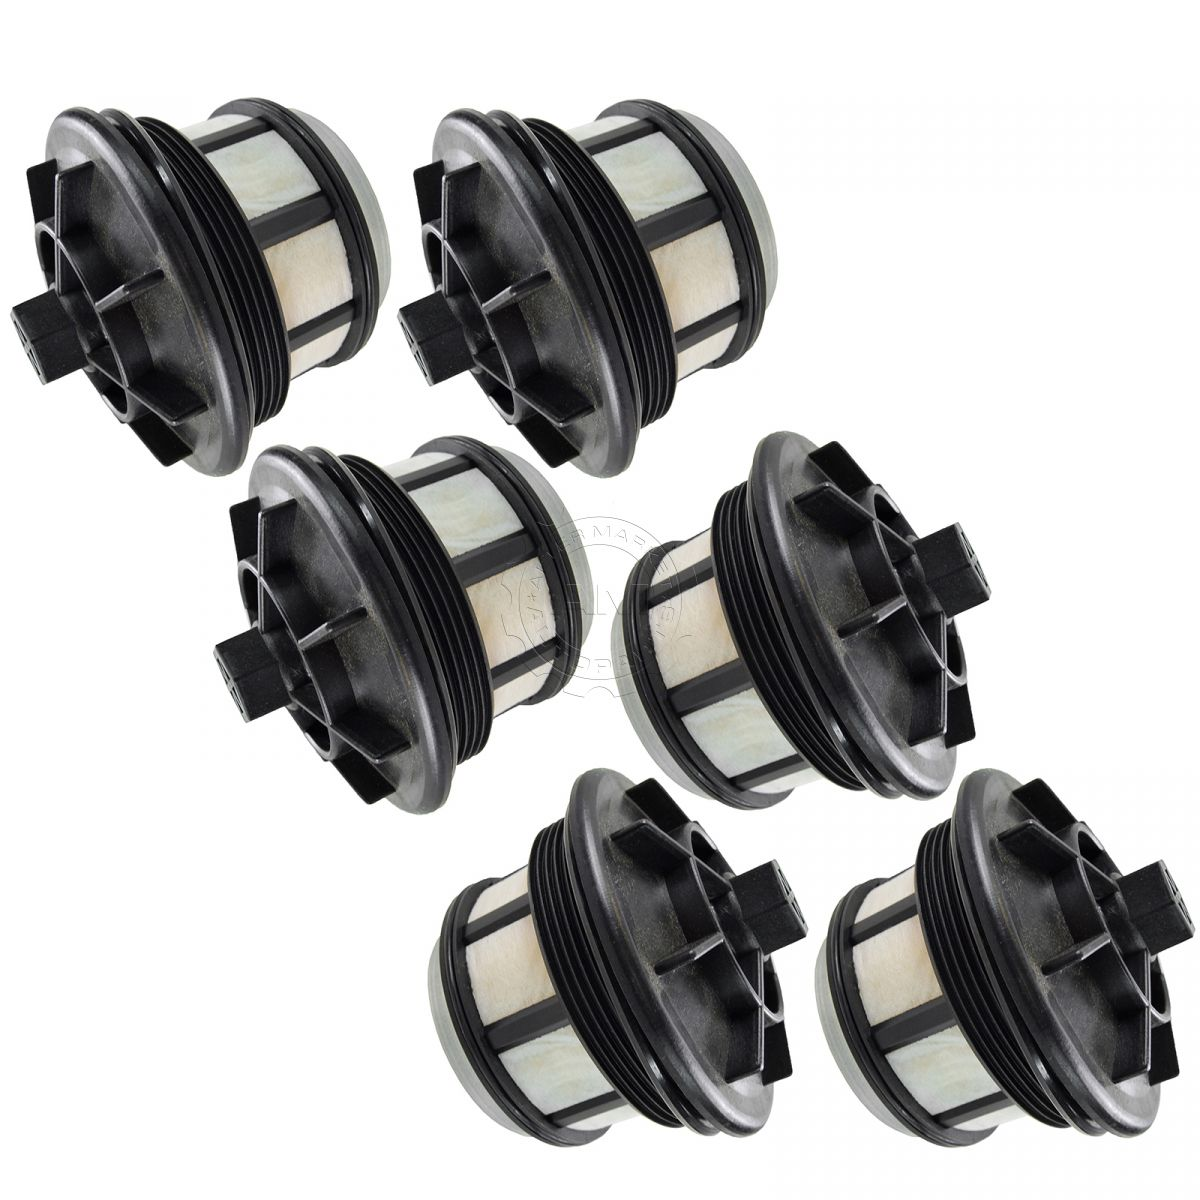 small resolution of fuel filter set of 6 for ford f250